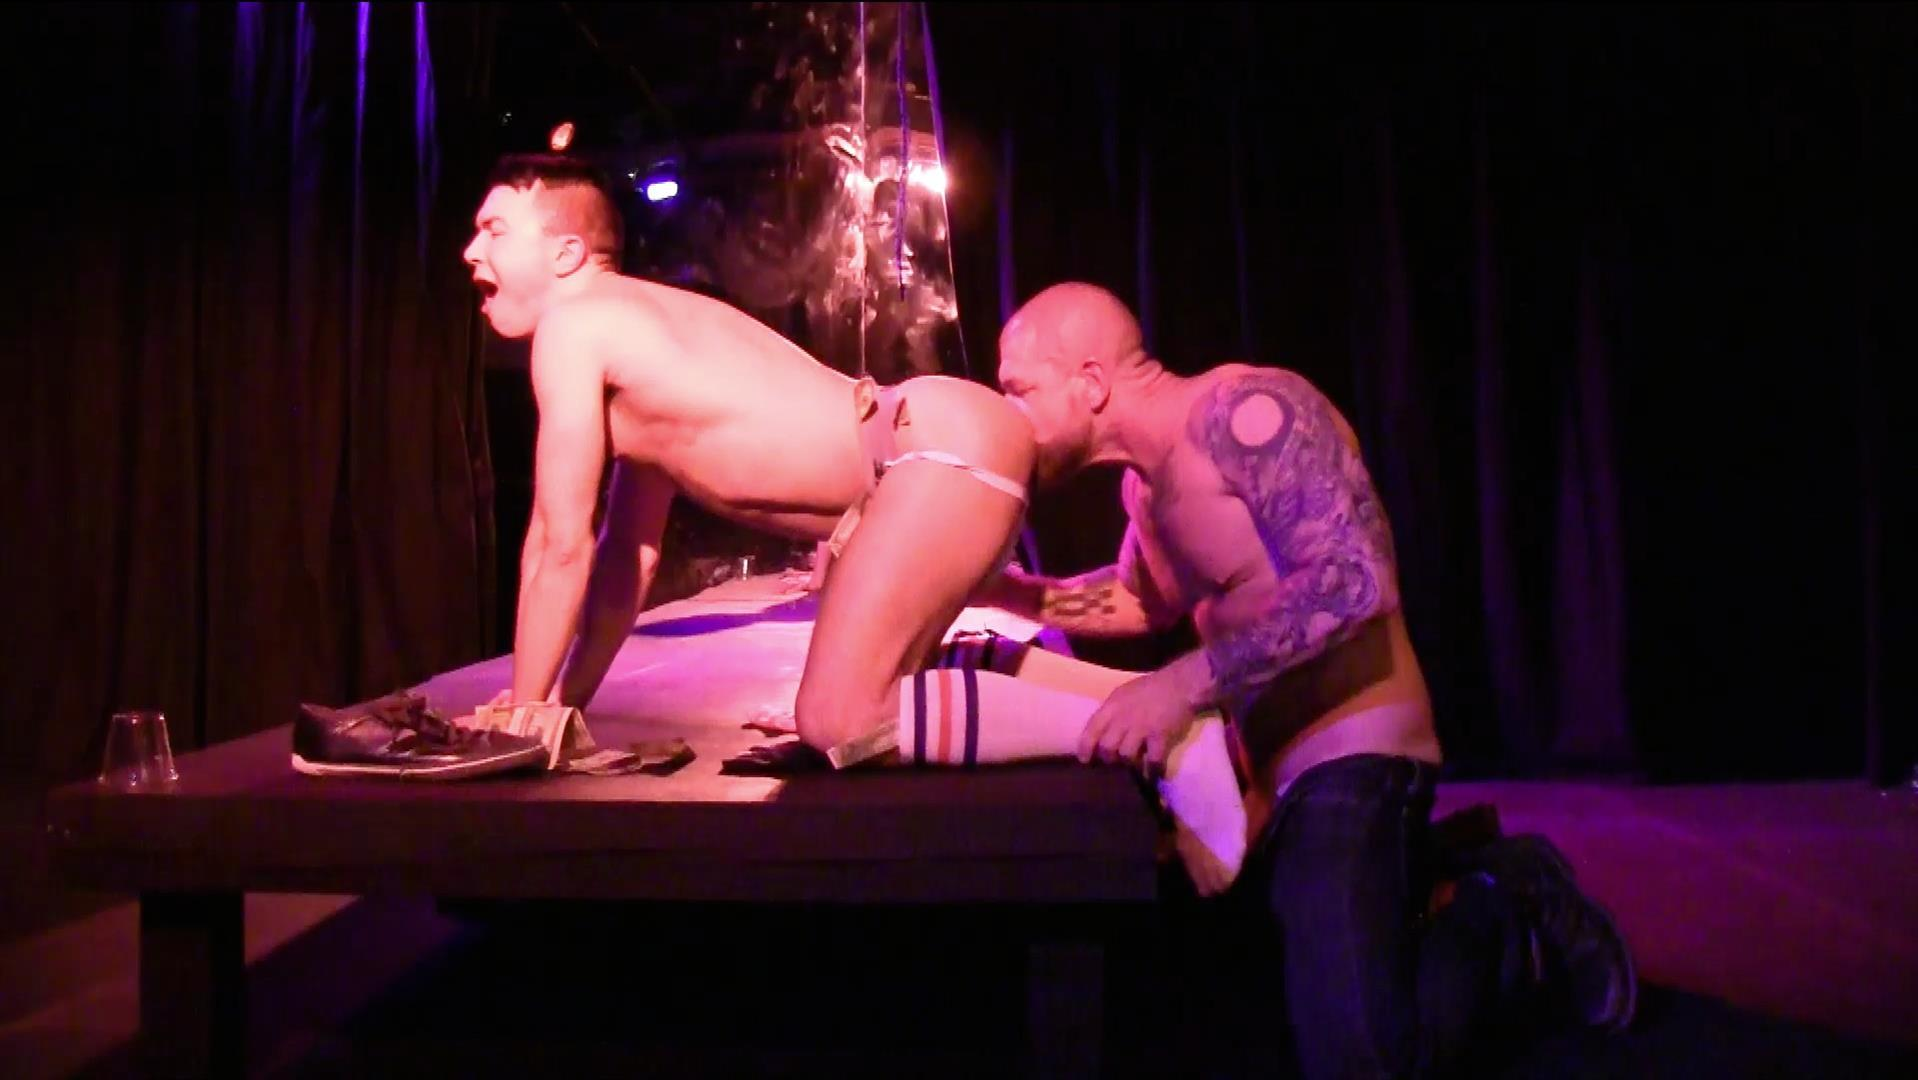 amateur male stripper gets barebacked on the stage – stiff daddy